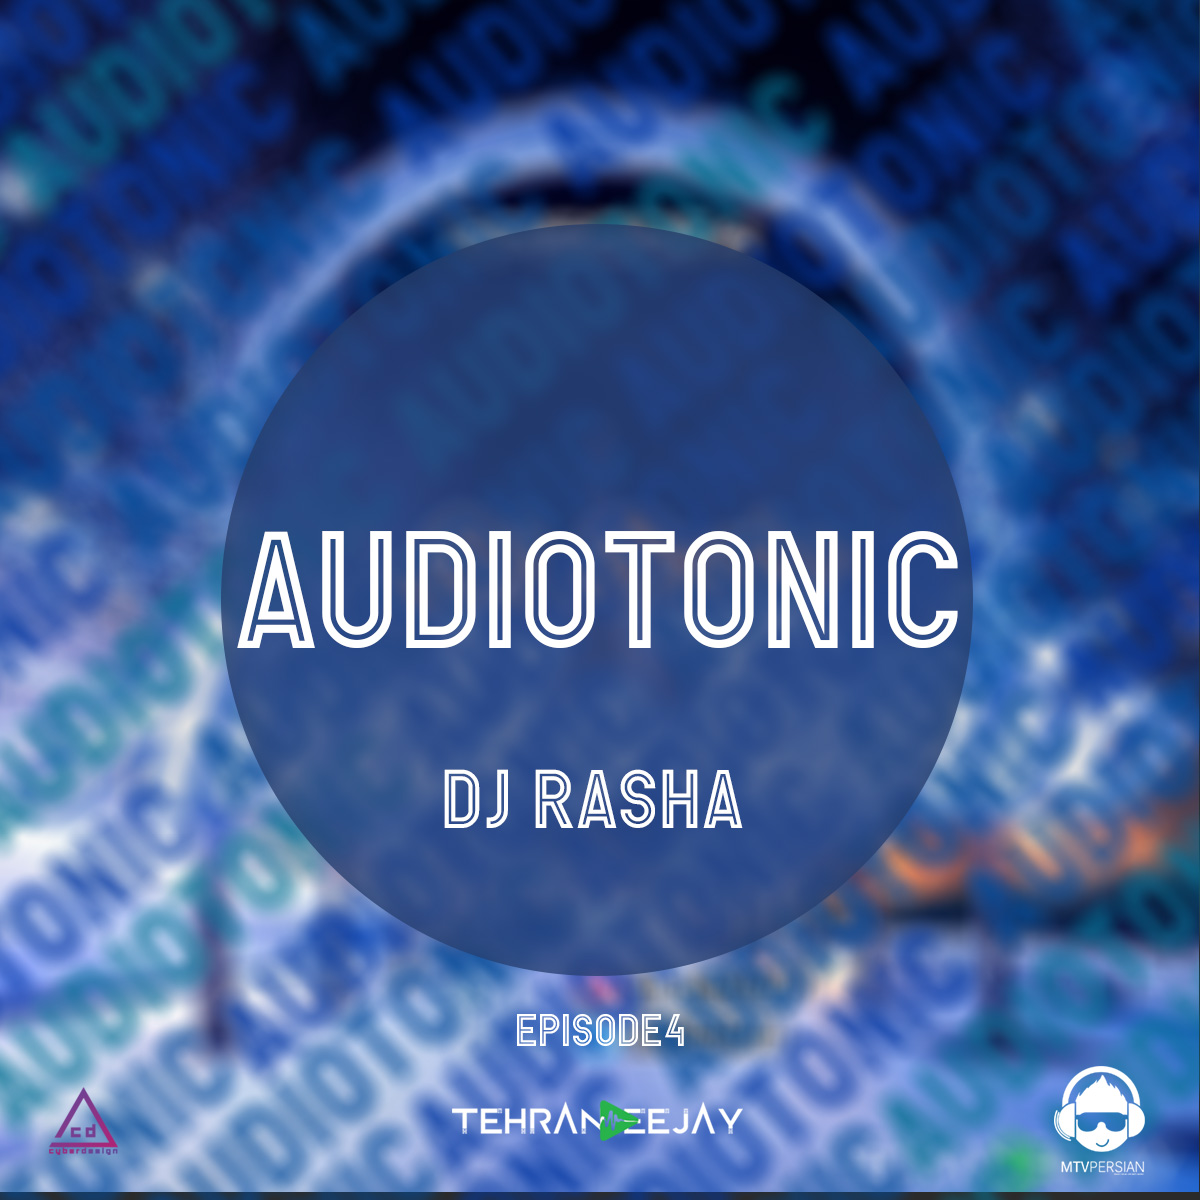 Dj Rasha – Audiotonic Episode 4